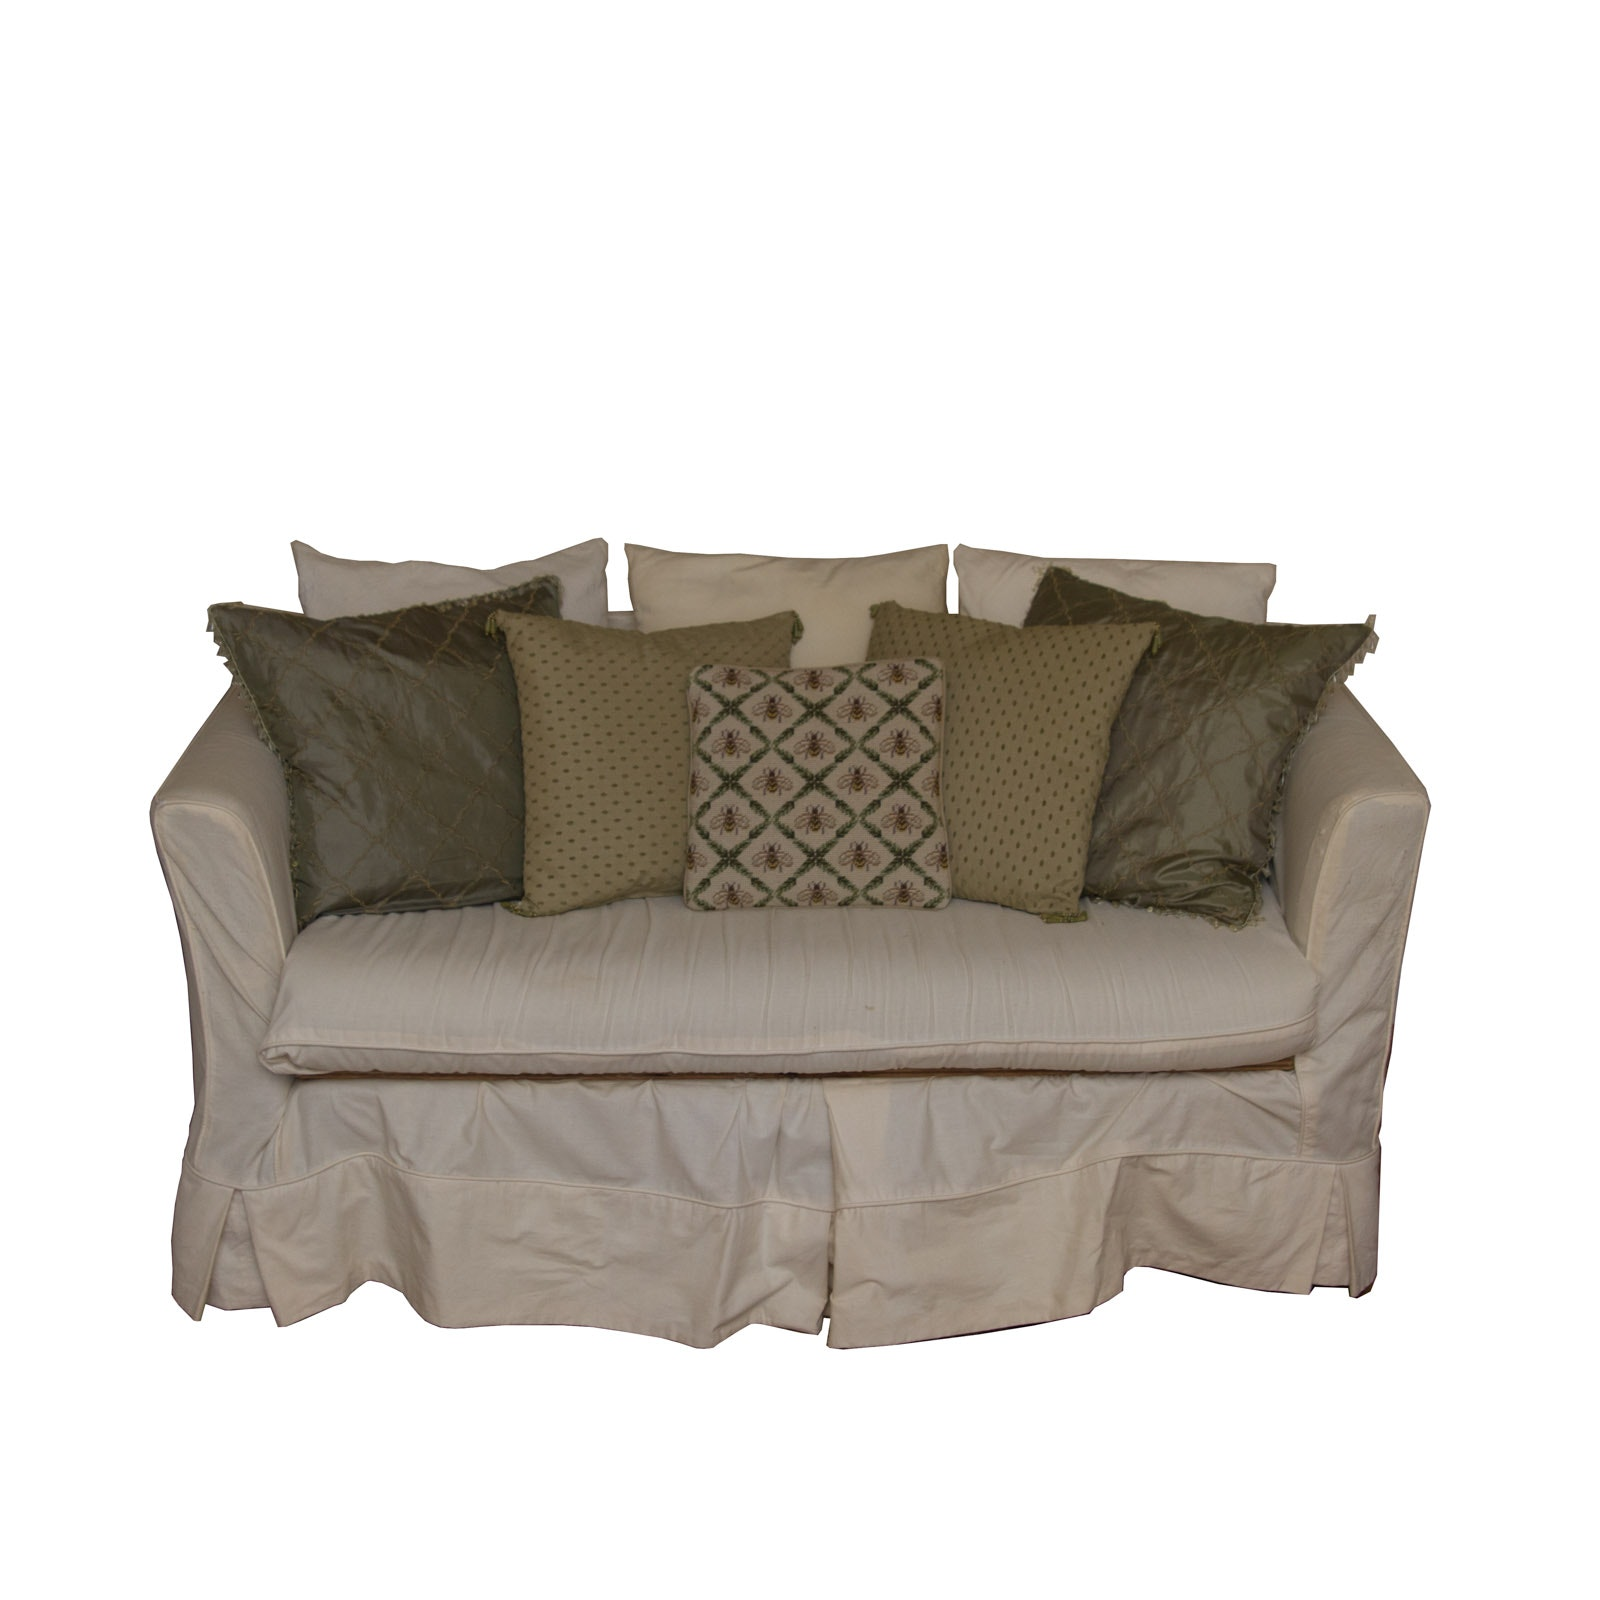 Upholstered Loveseat and Decorative Pillows